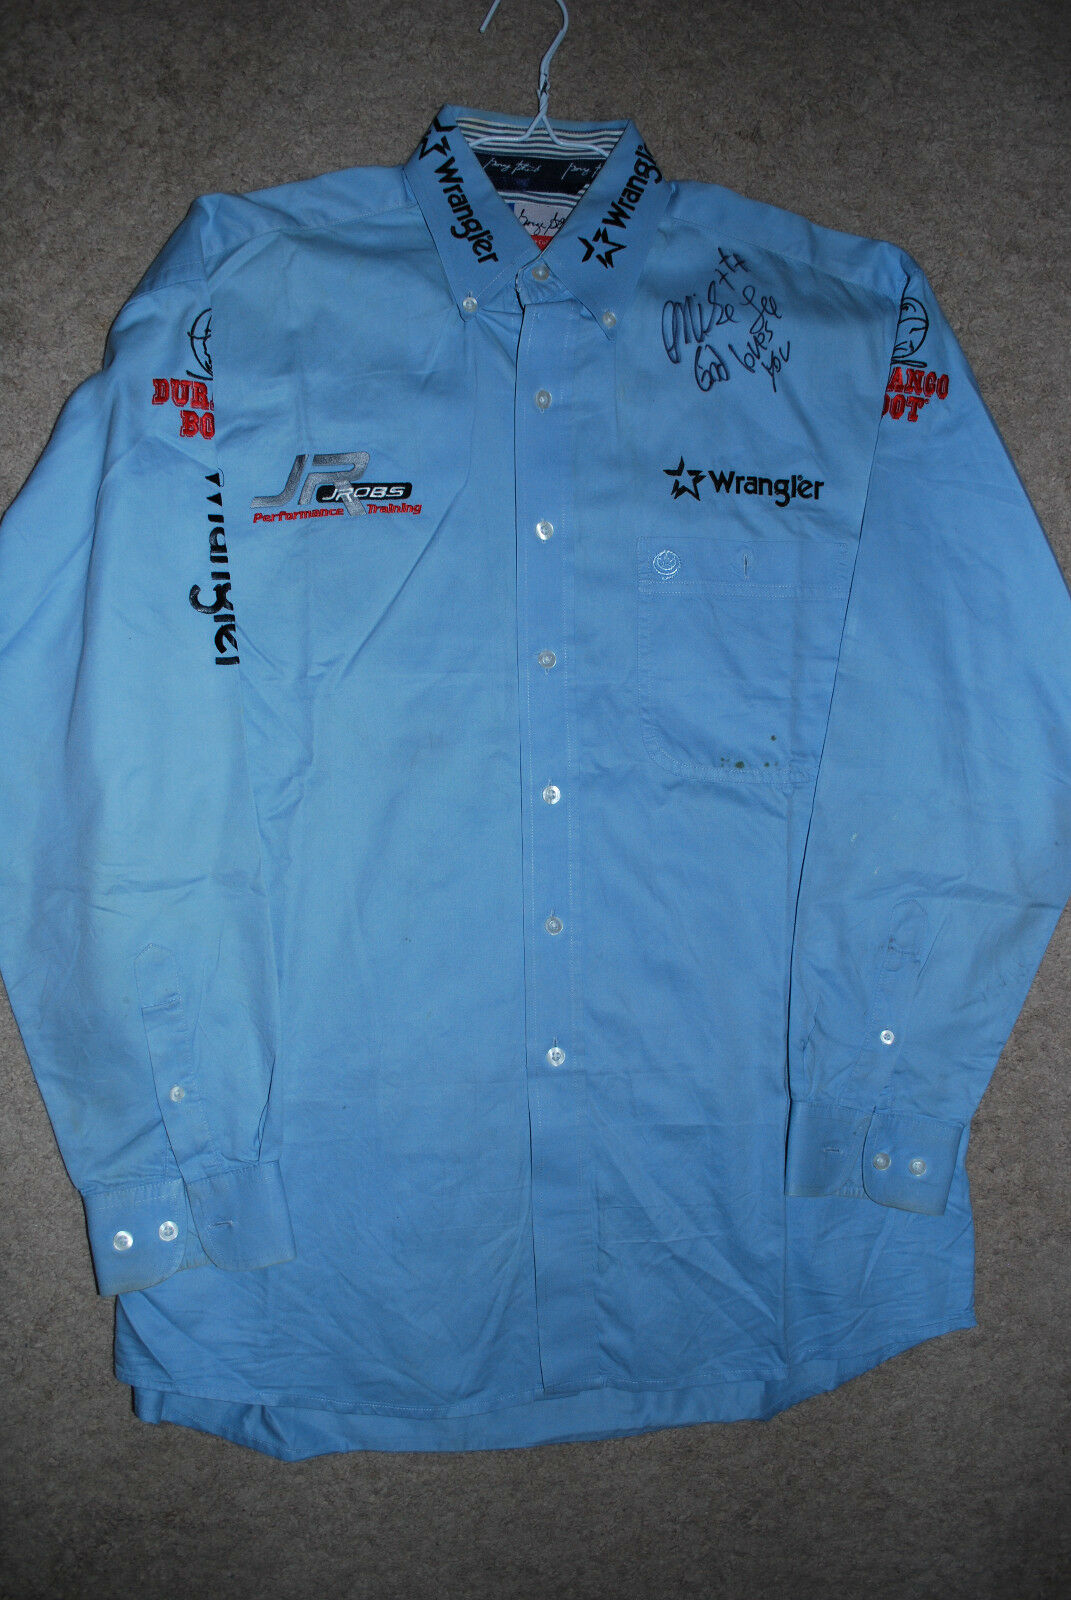 PBR Bull Riding Sponsor Shirt Pro Rodeo MIKE LEE PRCA Wrangler NFR Contestant